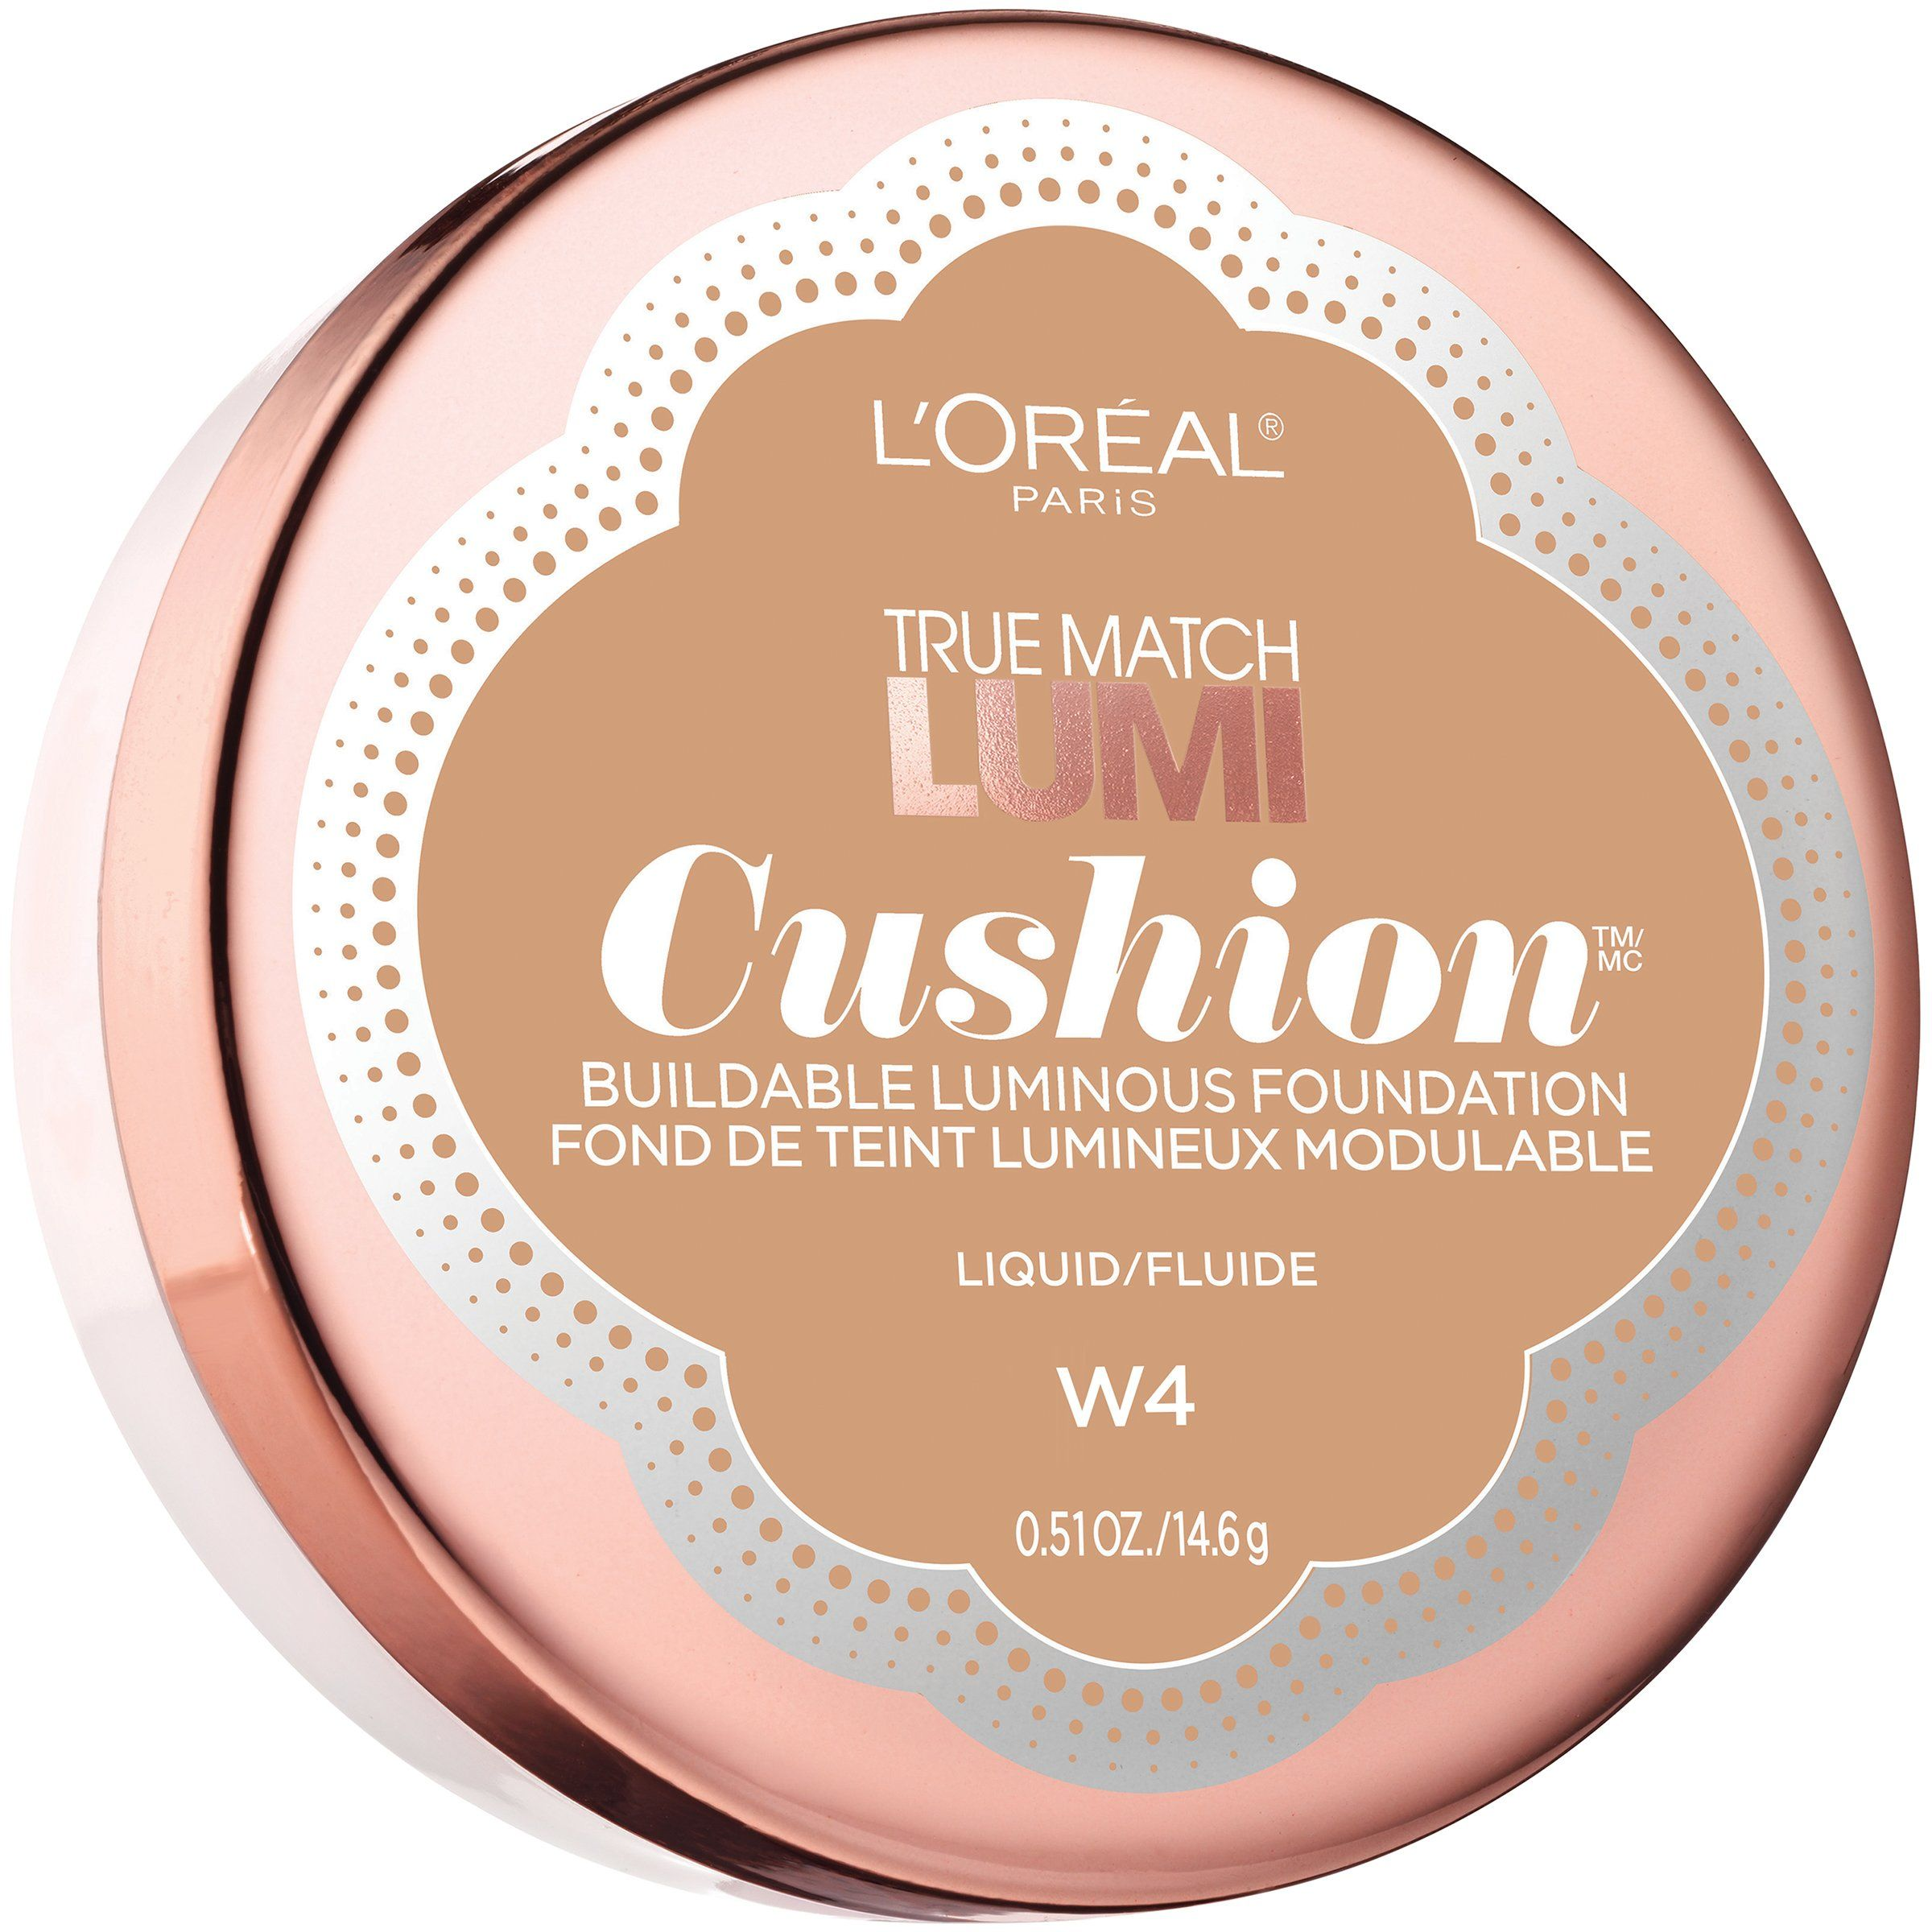 L'Oréal Paris True Match Lumi Cushion Foundation, W4